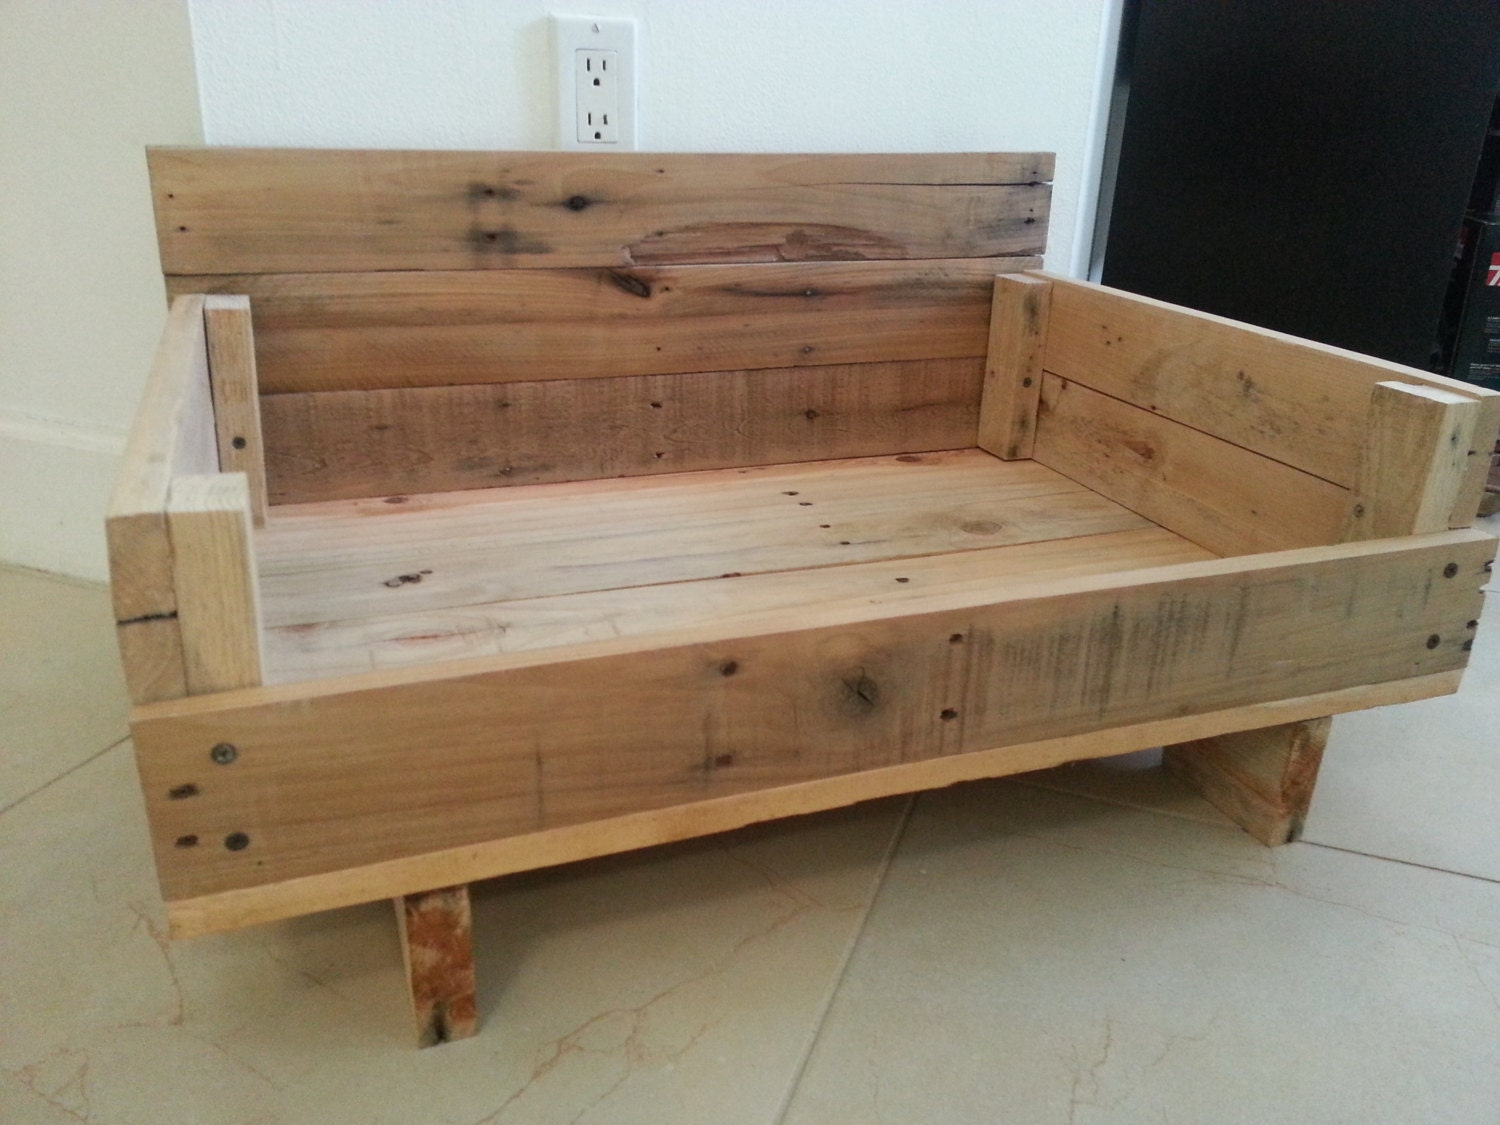 Very Impressive portraiture of Reclaimed Wood Dog Bed Mission Style by StudioFitolli on Etsy with #8A6B41 color and 1500x1125 pixels